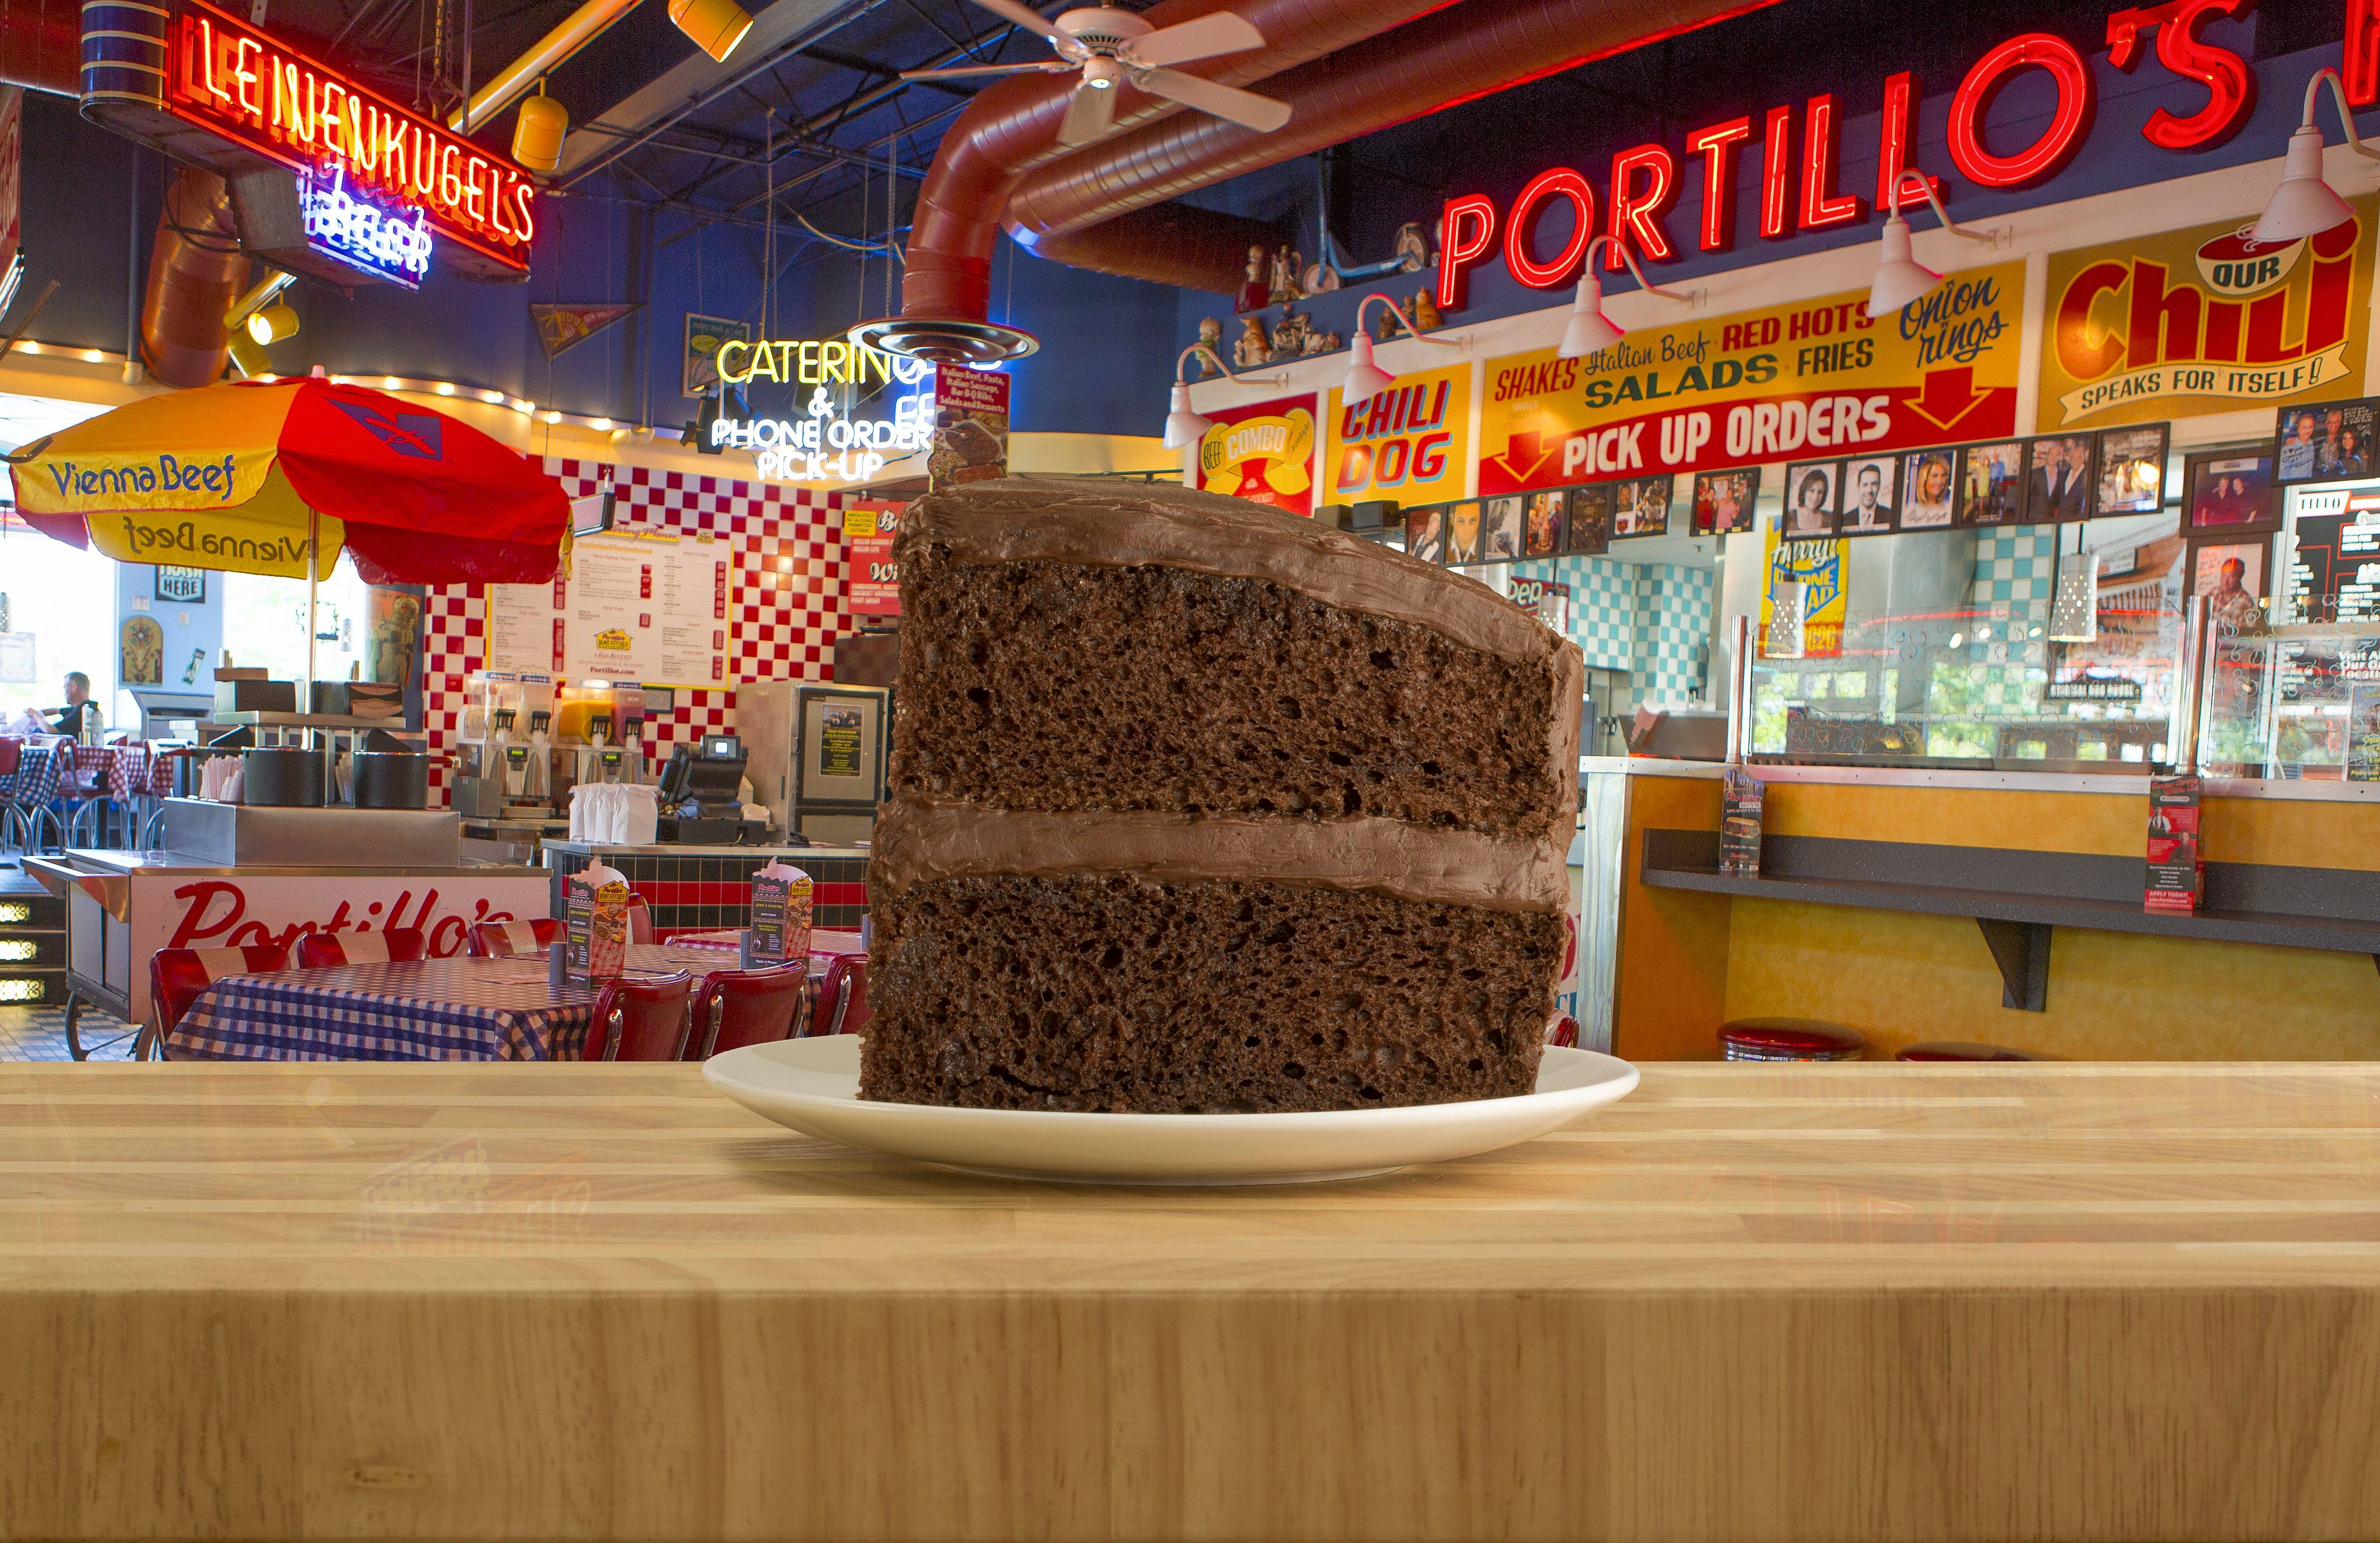 Portillo's to mark anniversary with 54-cent cake slice